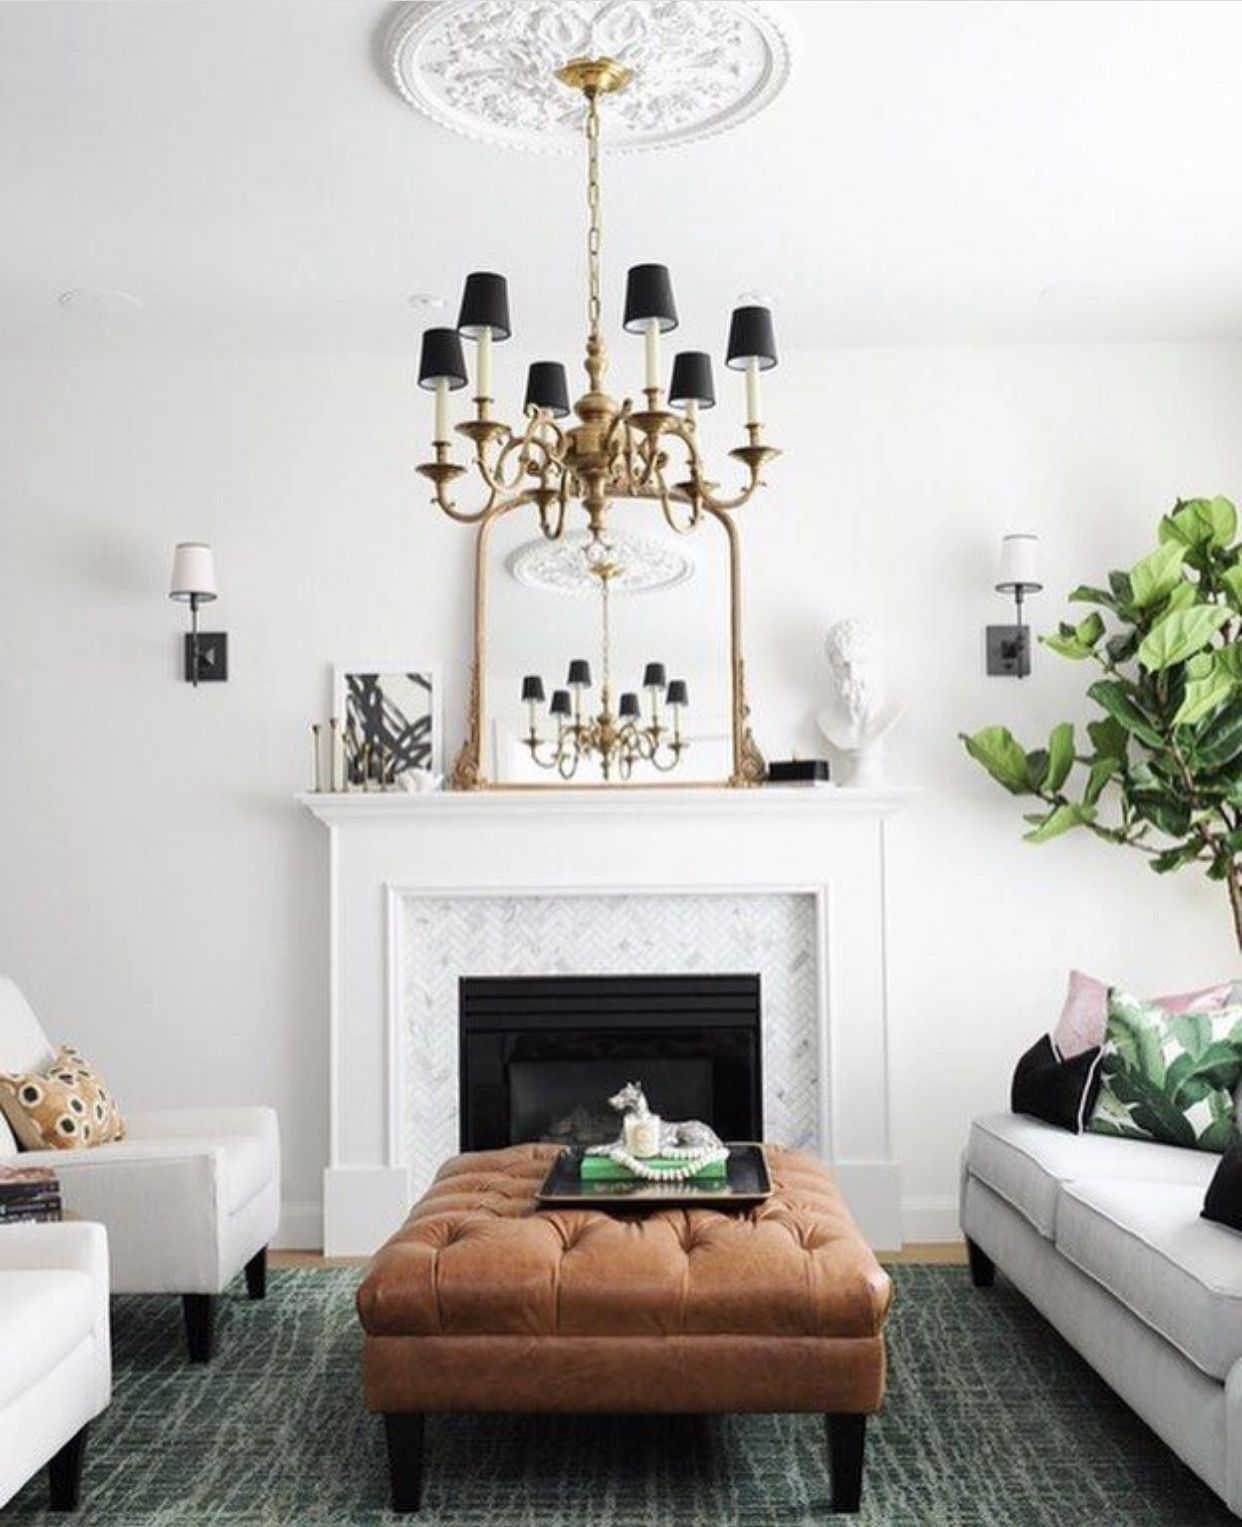 73 Eclectic Living Room Decor Ideas: Idea By Jennifer George On Decor